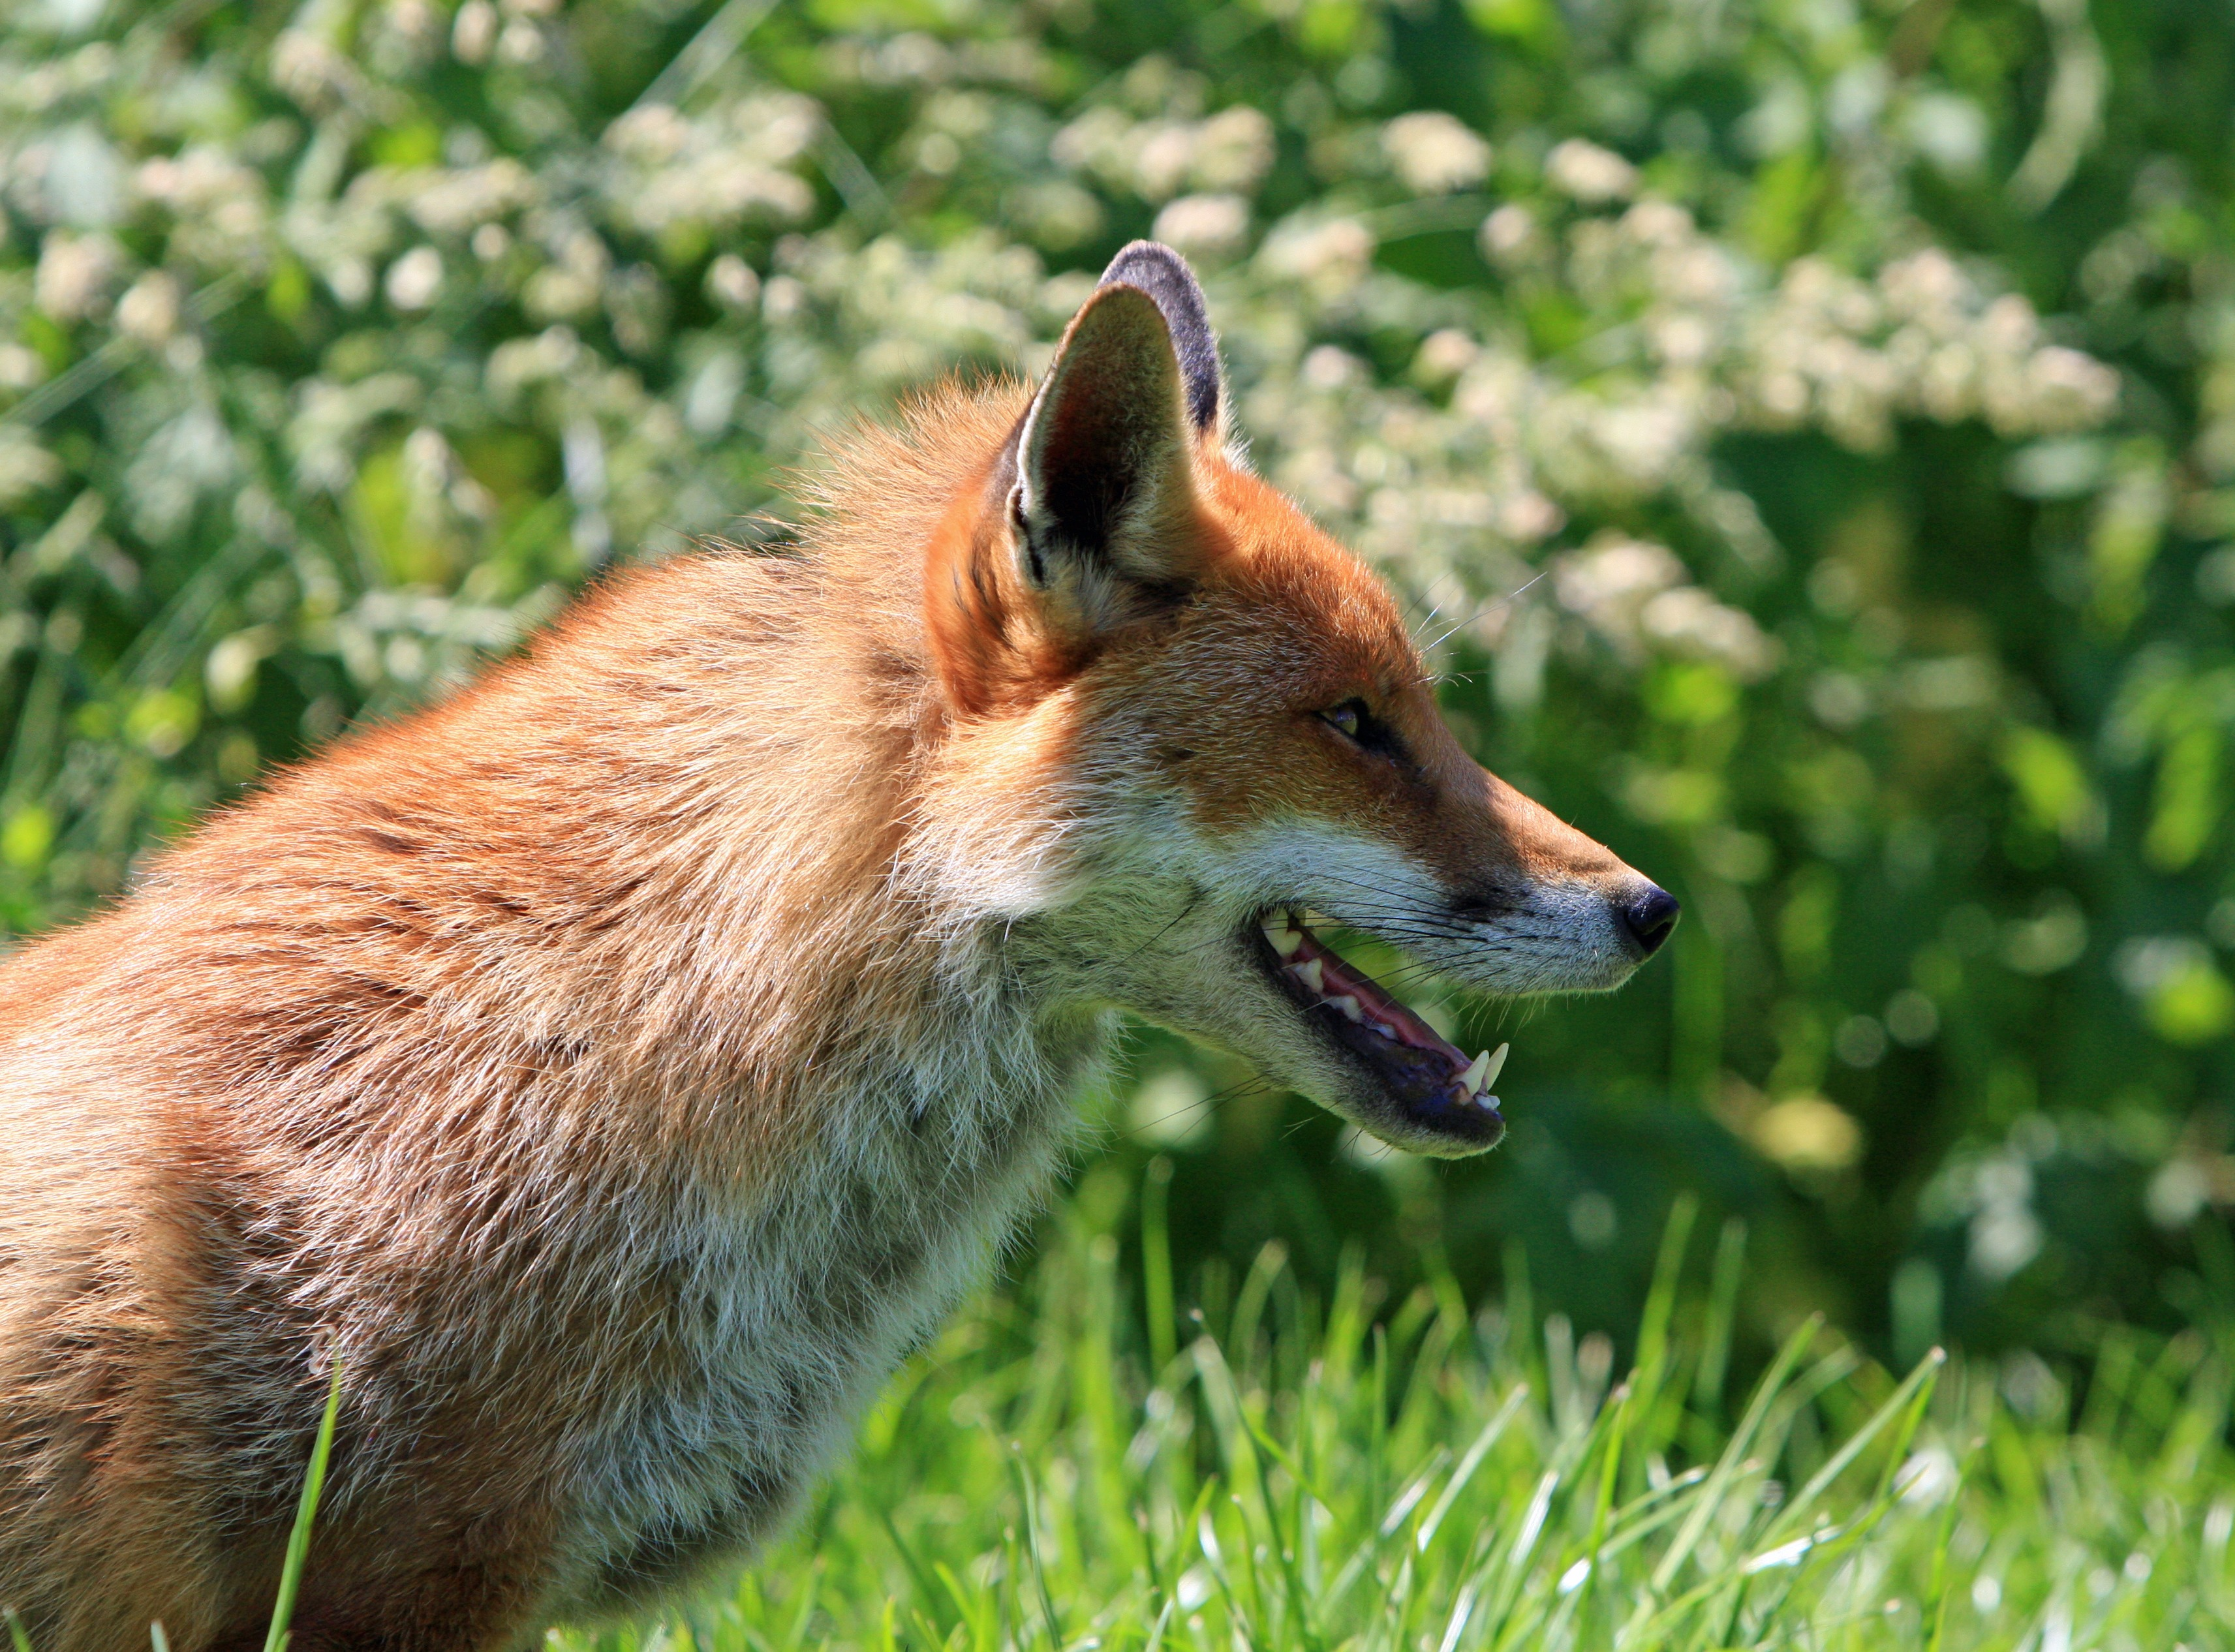 brown fox in green grass field during daytime free stock photo